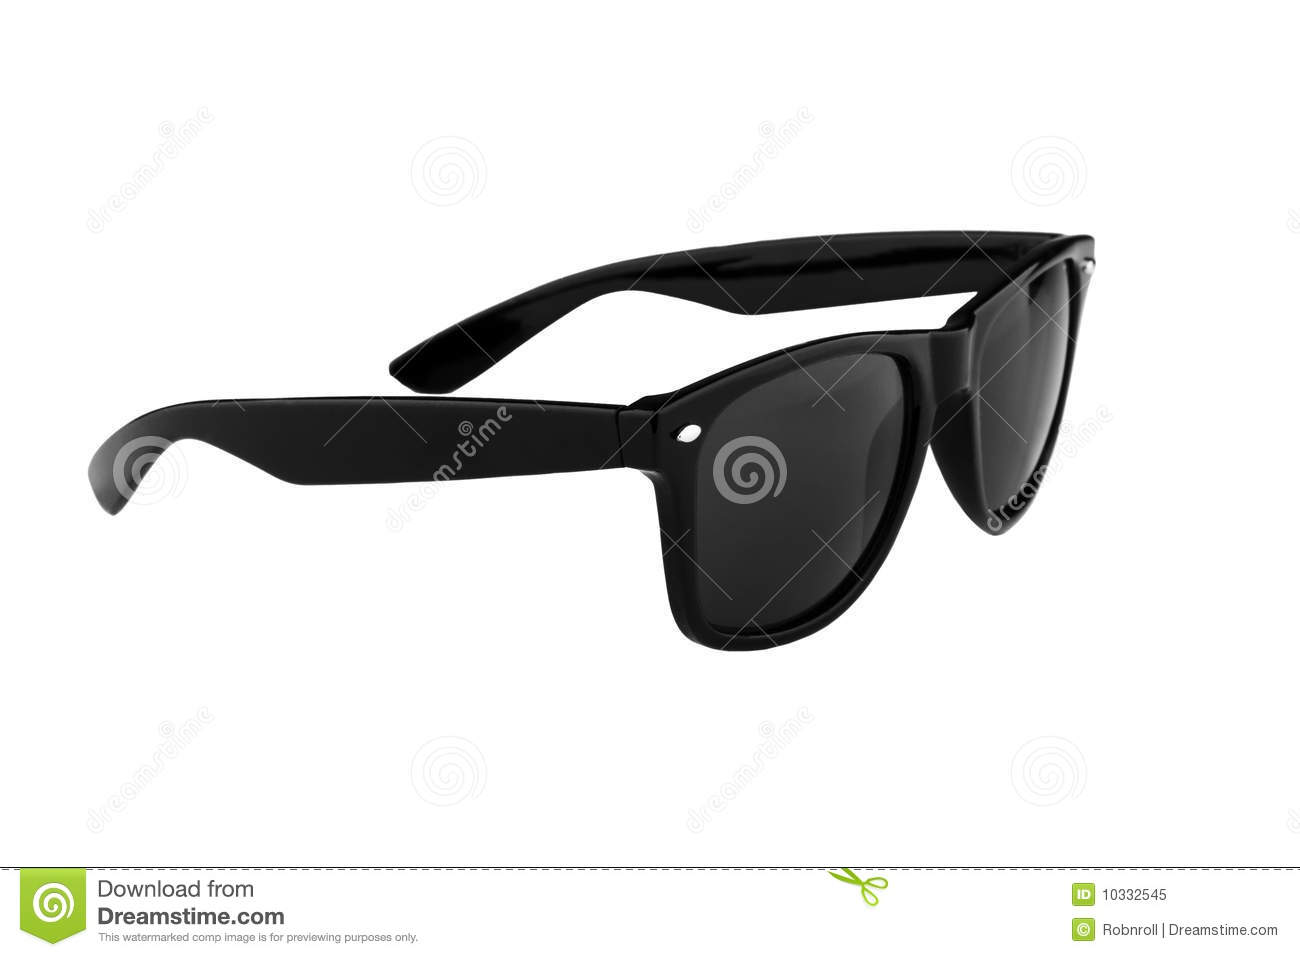 Sunglasses Clipart Black And White Black sunglasses isolated on